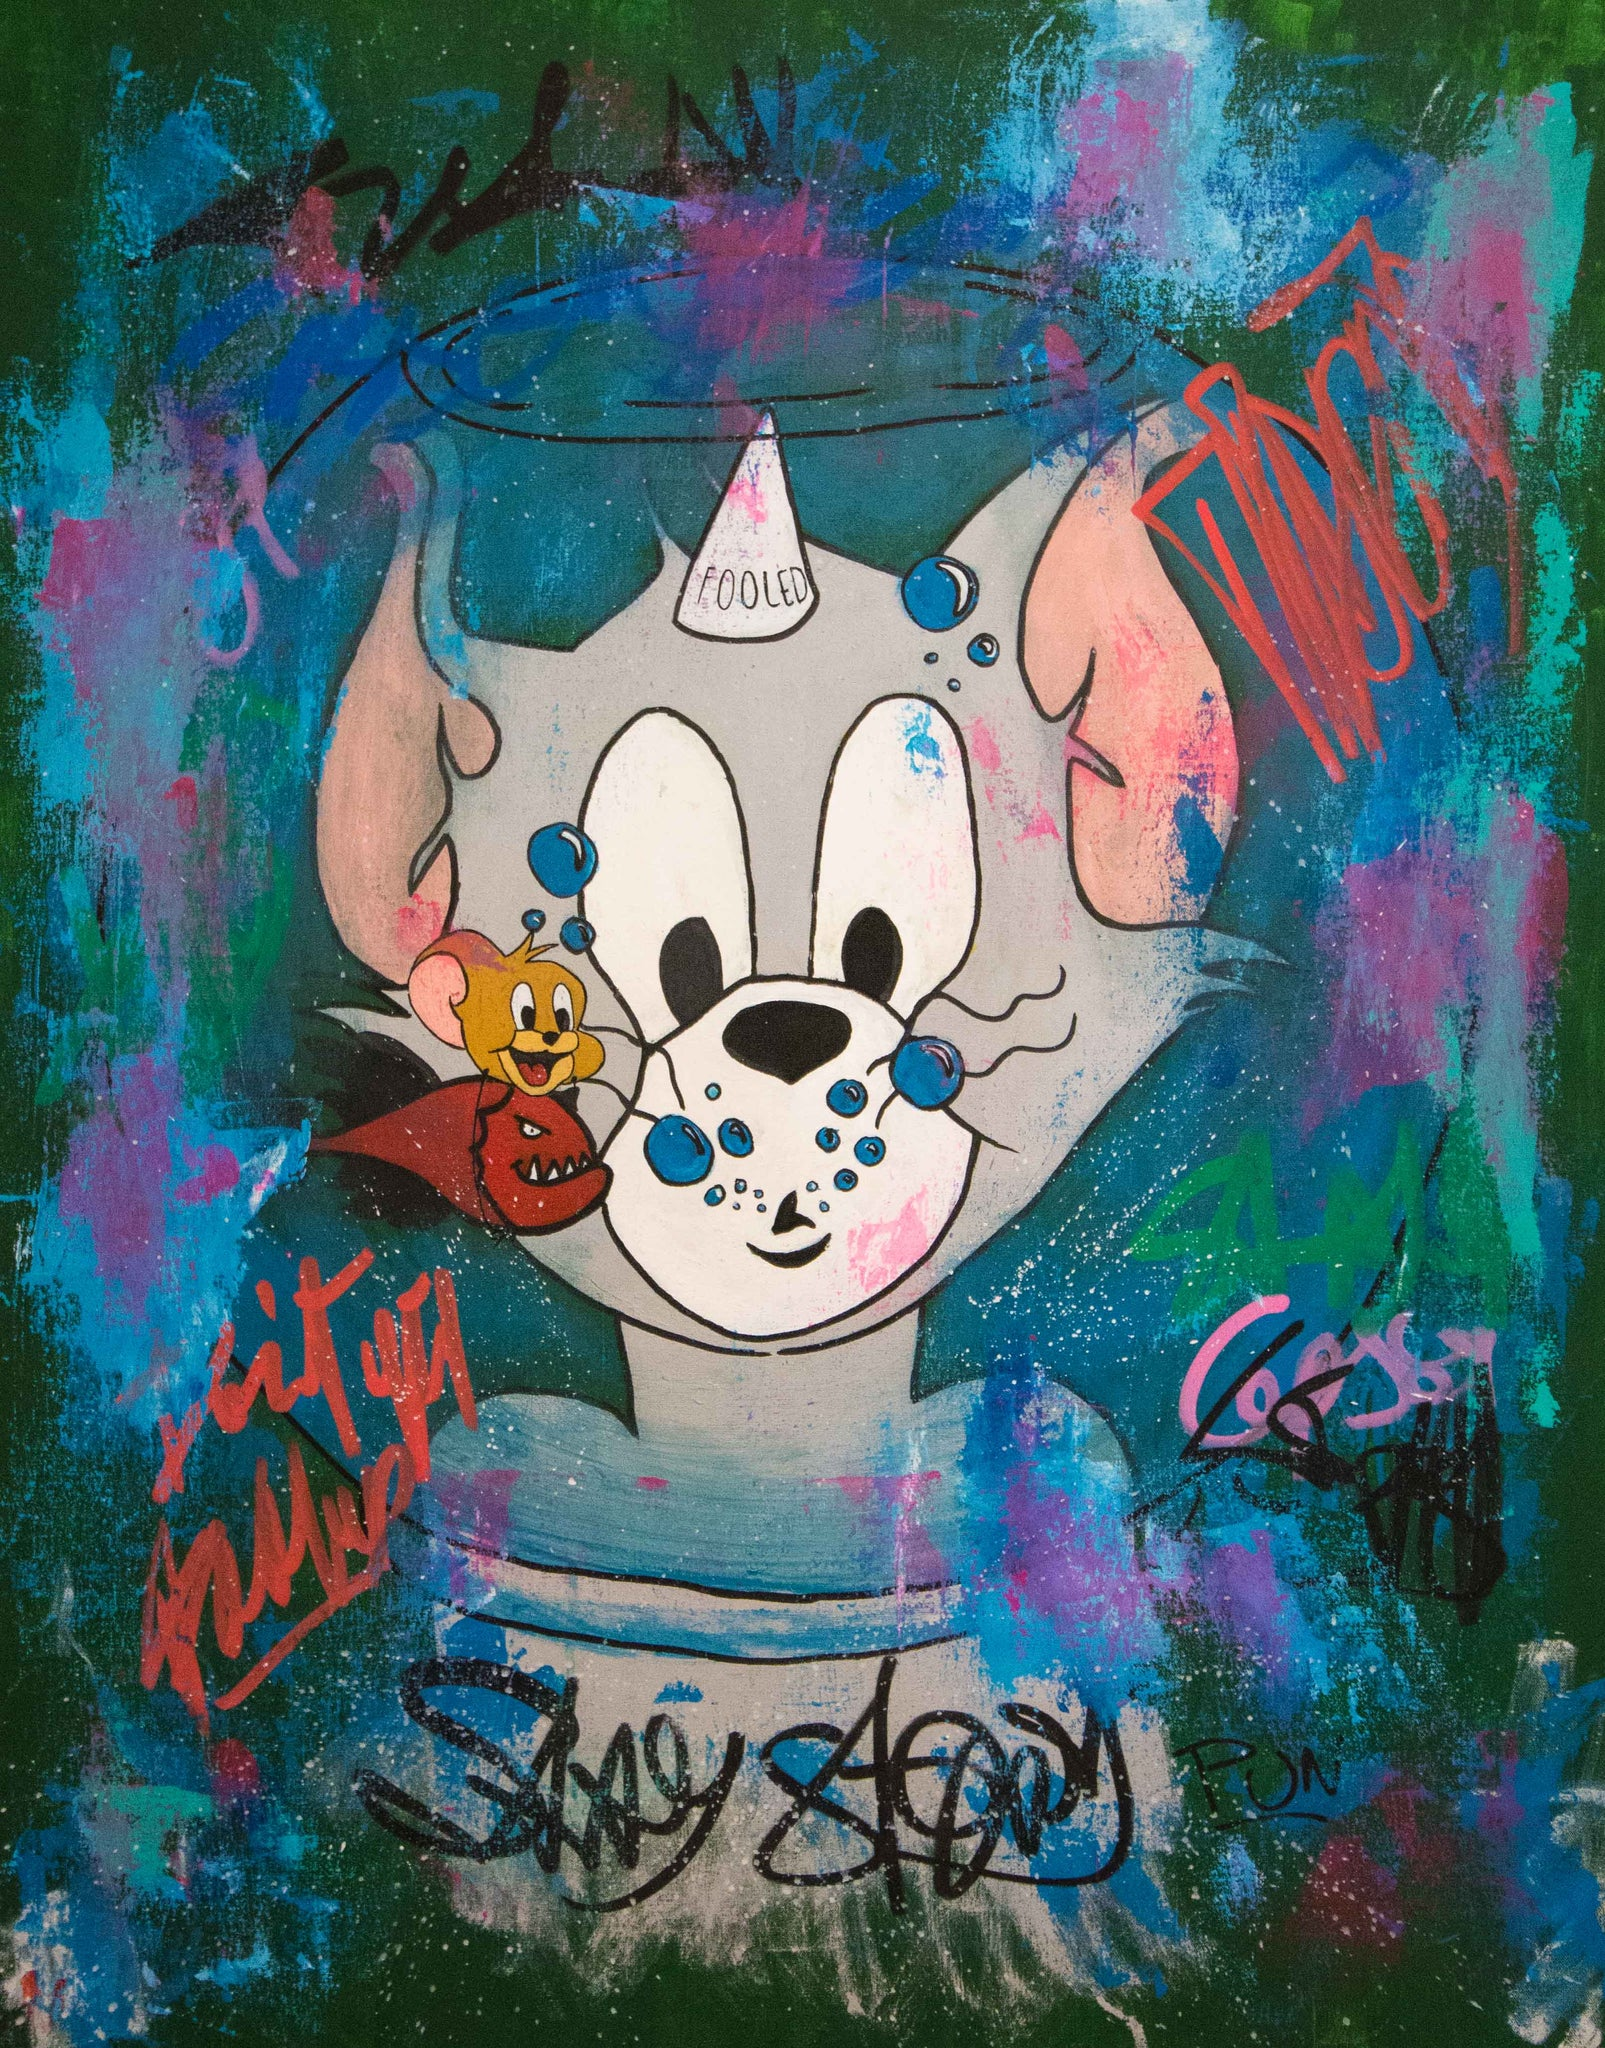 Dont Be Fooled Tom And Jerry - 90x70cm - Ready to Hang - Free shipping- Certification Included